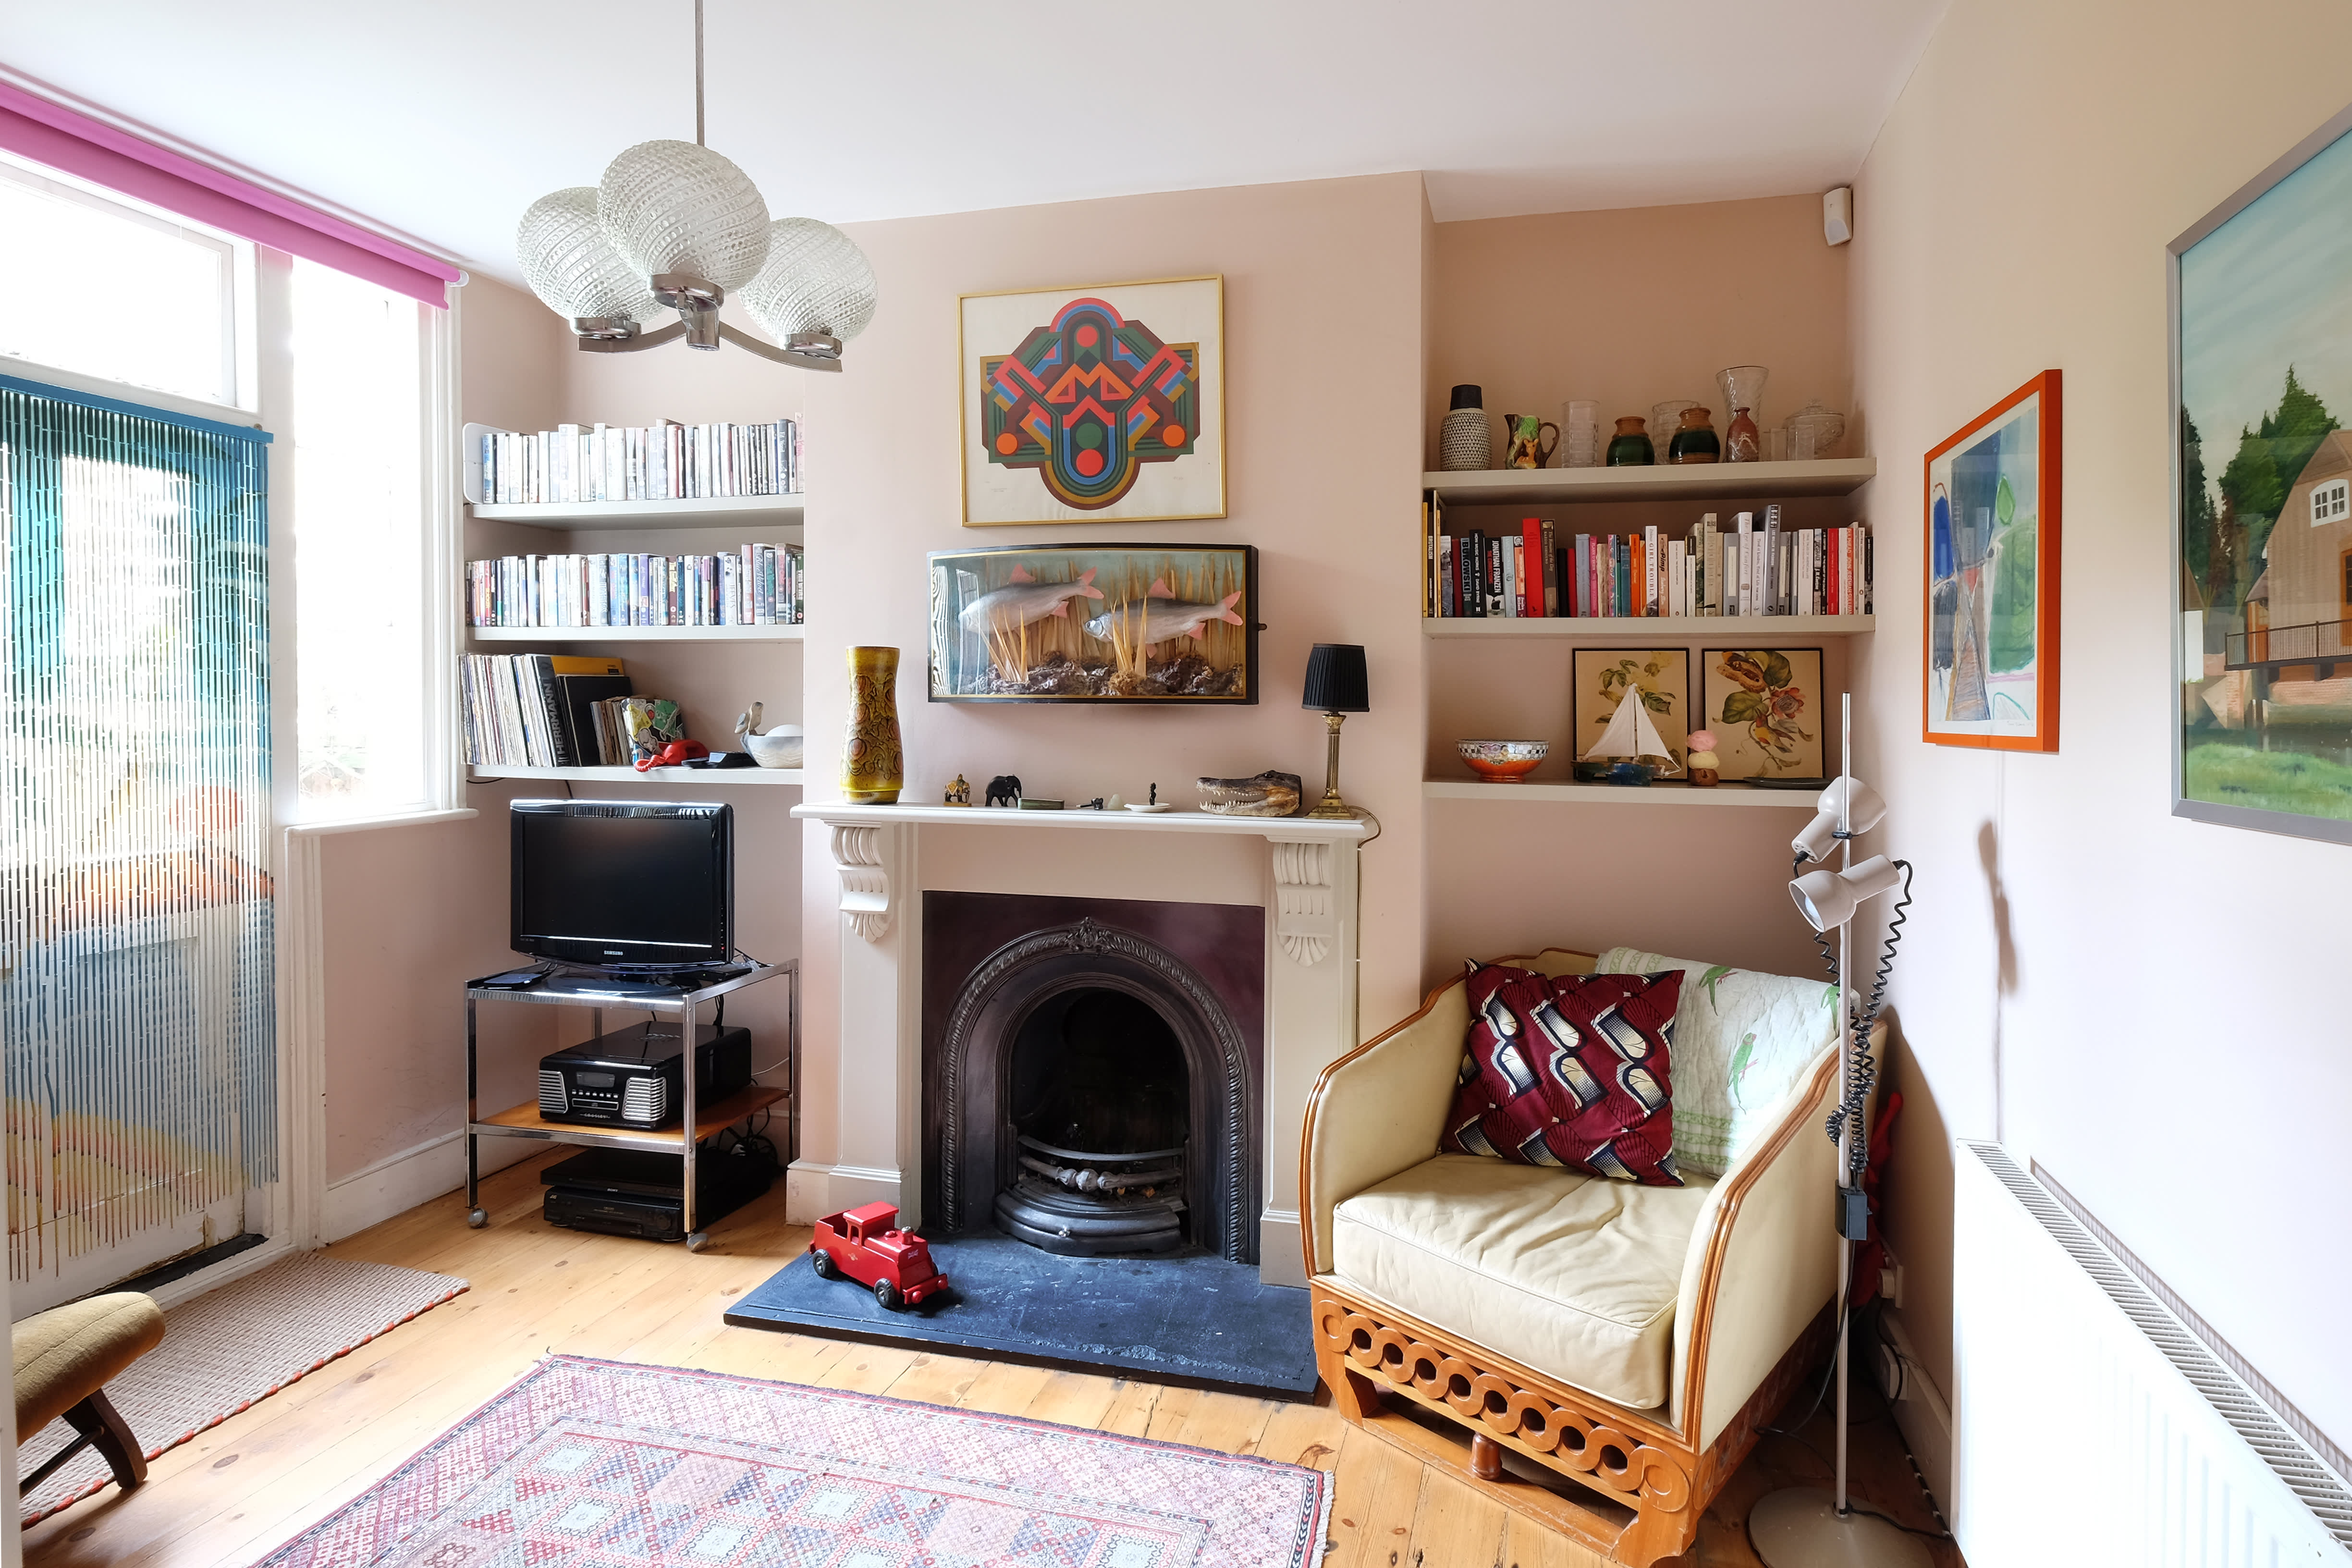 House Tour A 70s Style South East London Home Apartment Therapy